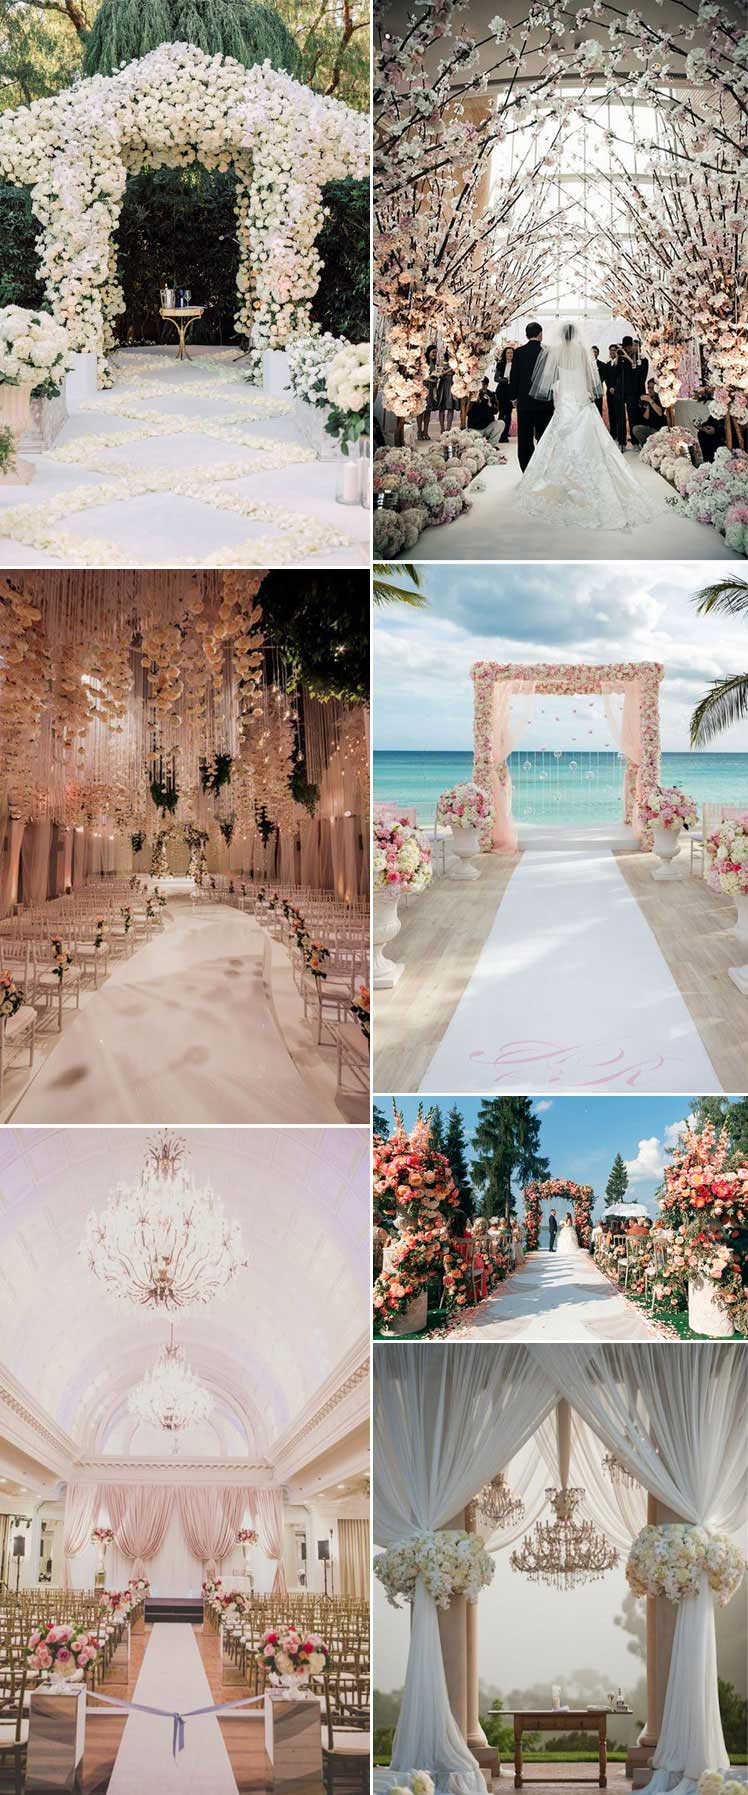 beautifully lavish wedding aisles